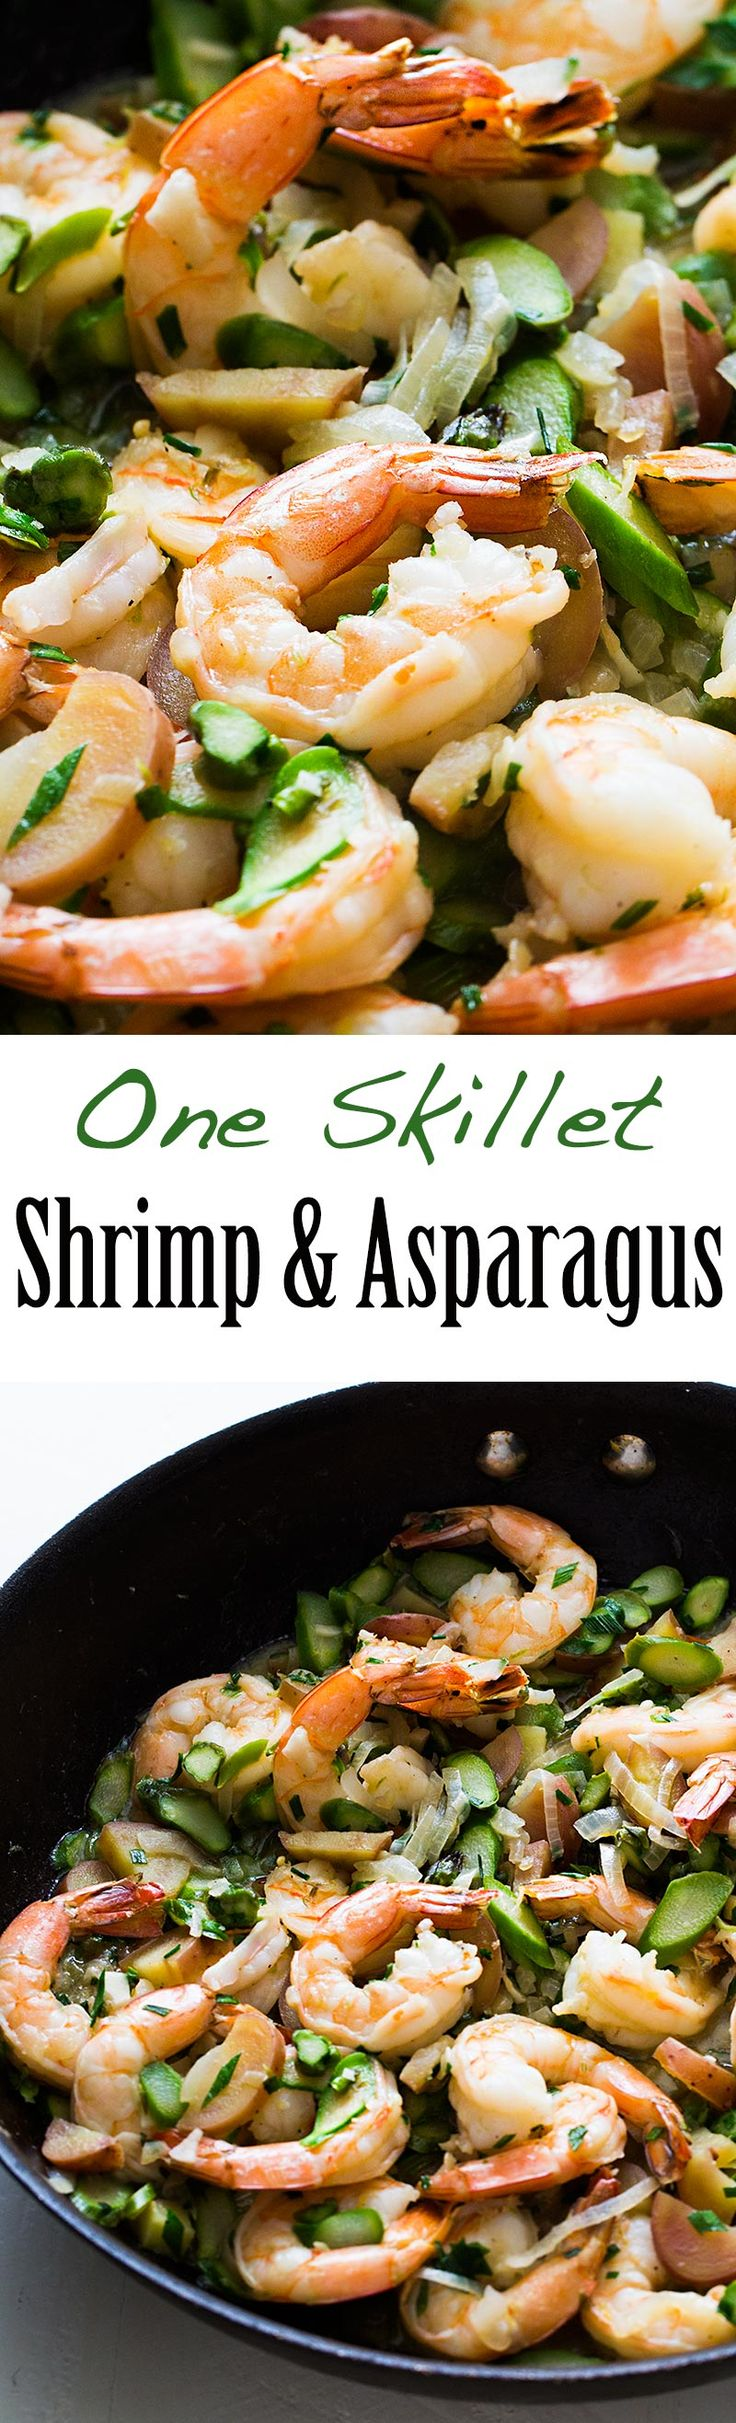 Skillet Shrimp and Asparagus, only use one pan! Quick, easy, and delicious, perfect for a midweek meal. On SimplyRecipes.com